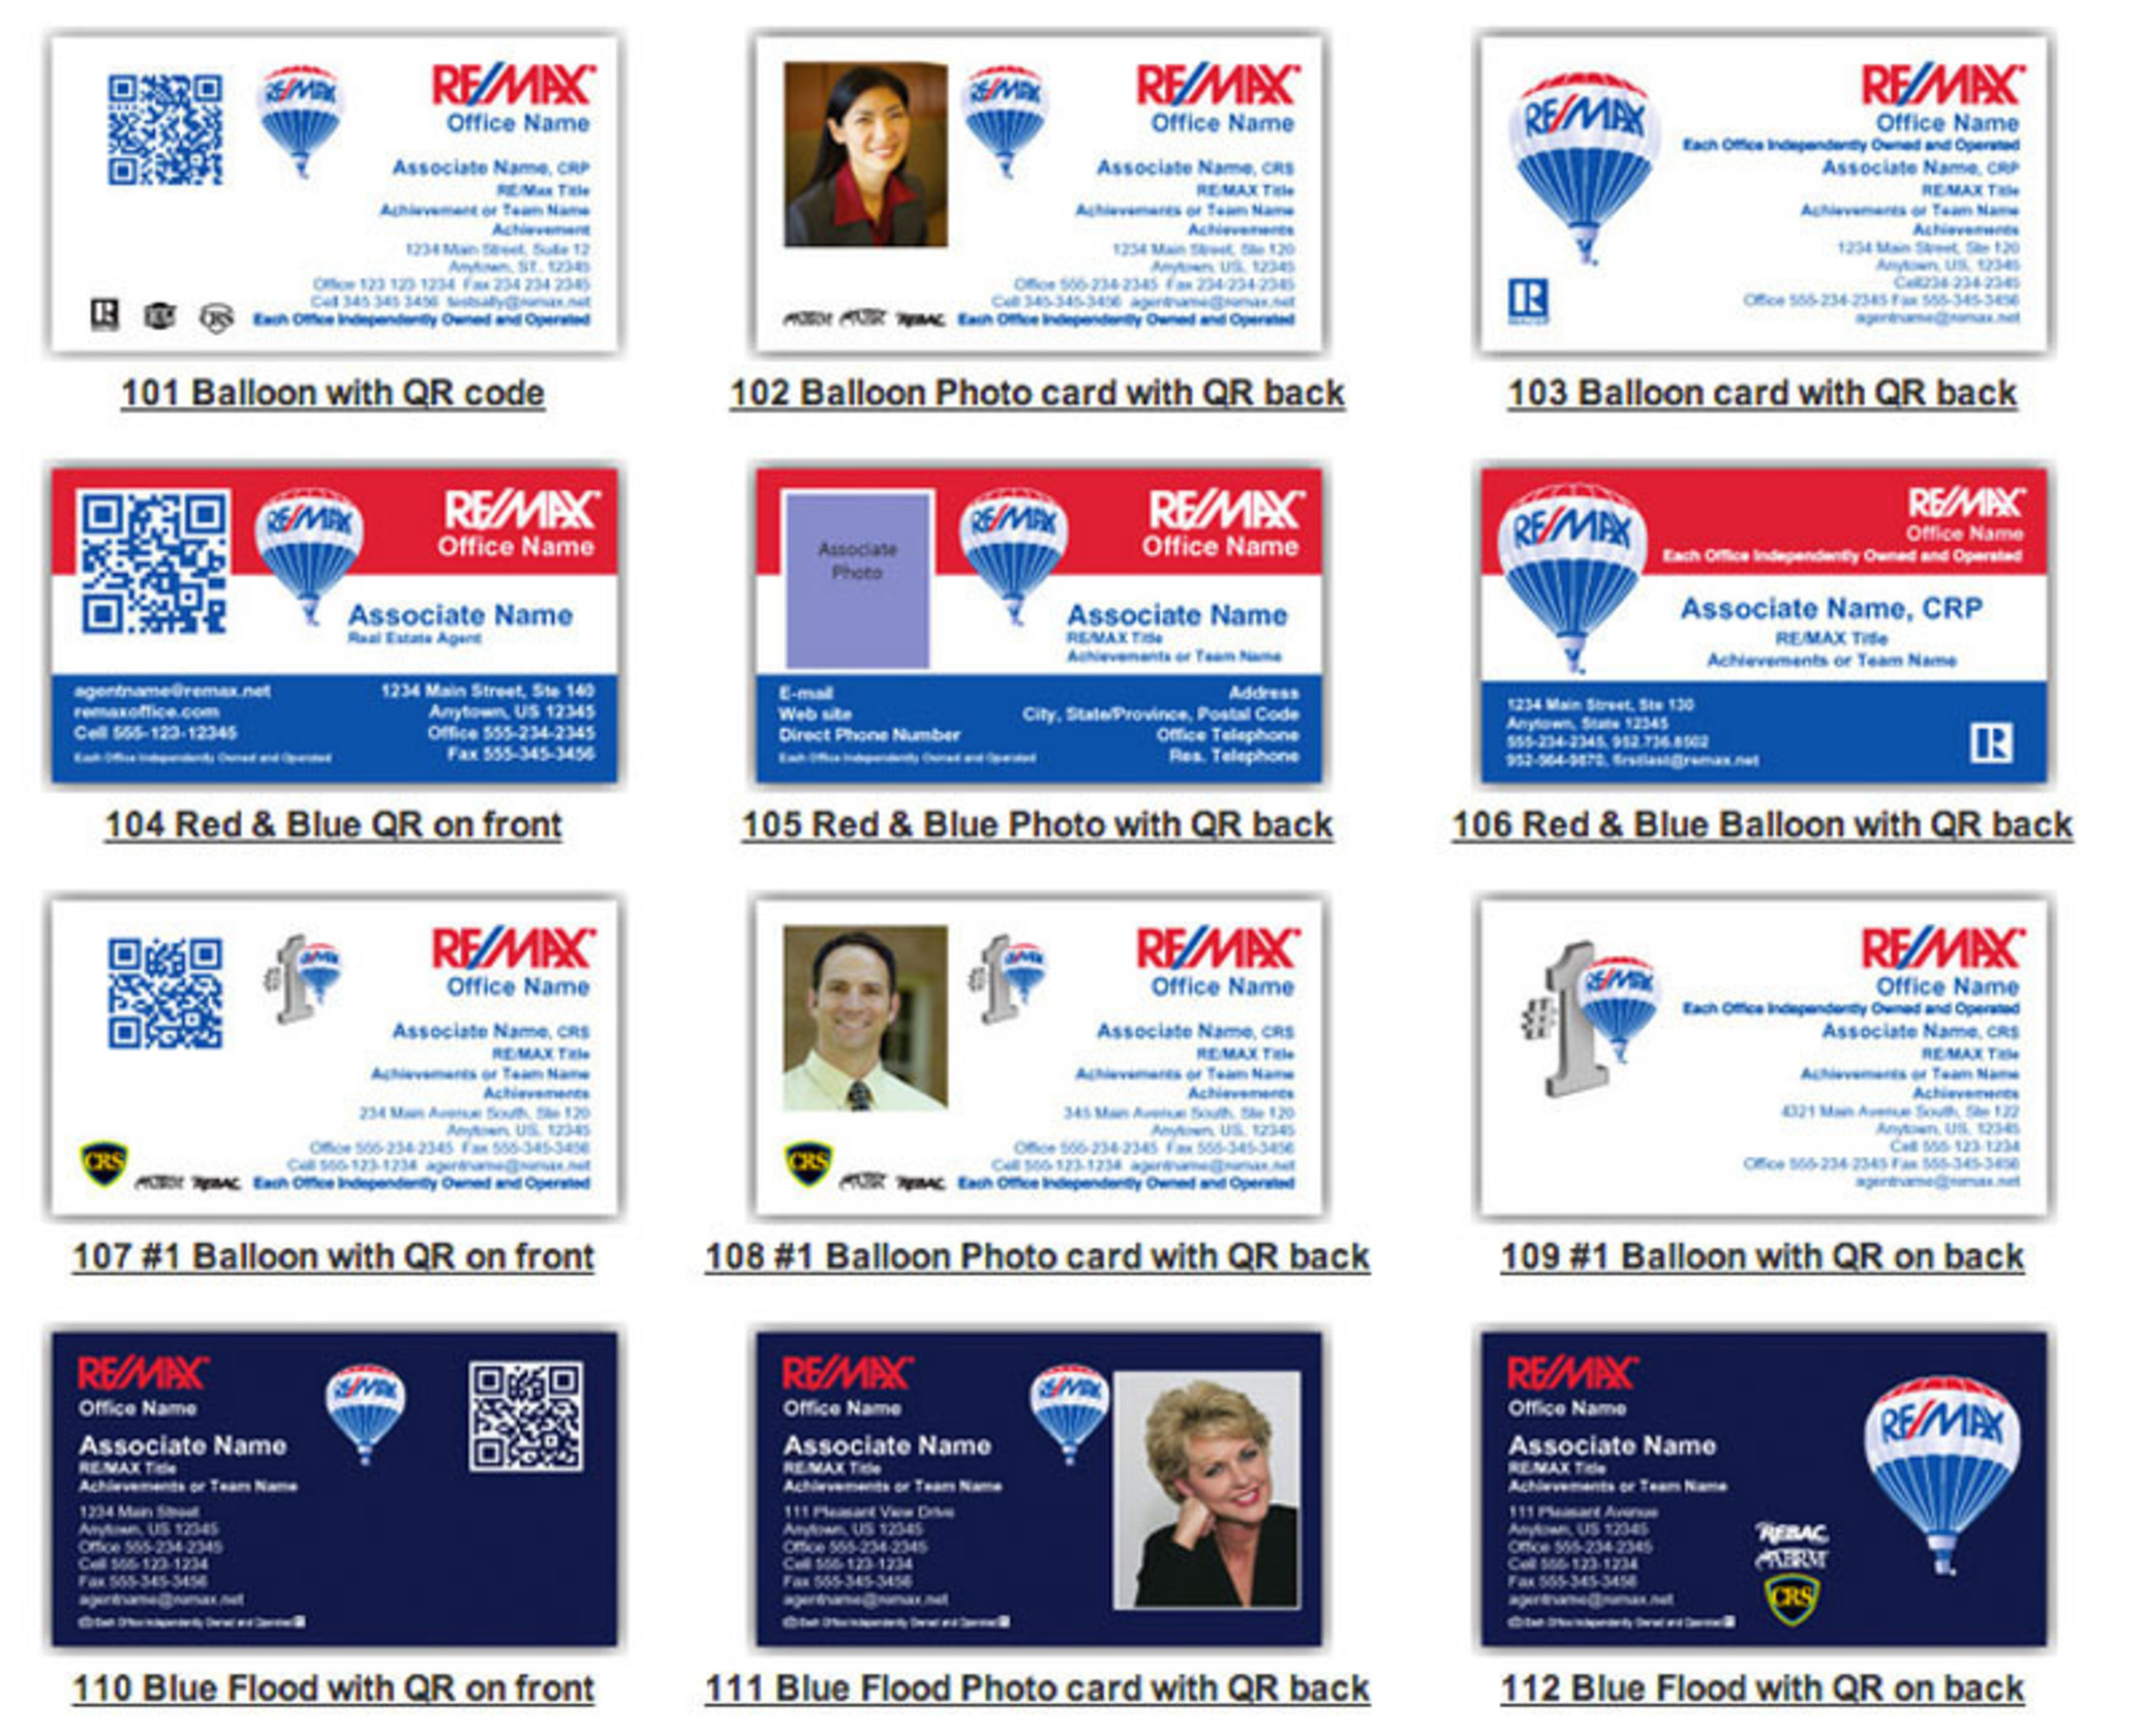 RE/MAX Regional Services Launches Printed Business Cards With Mobile Capabilities For 4,000